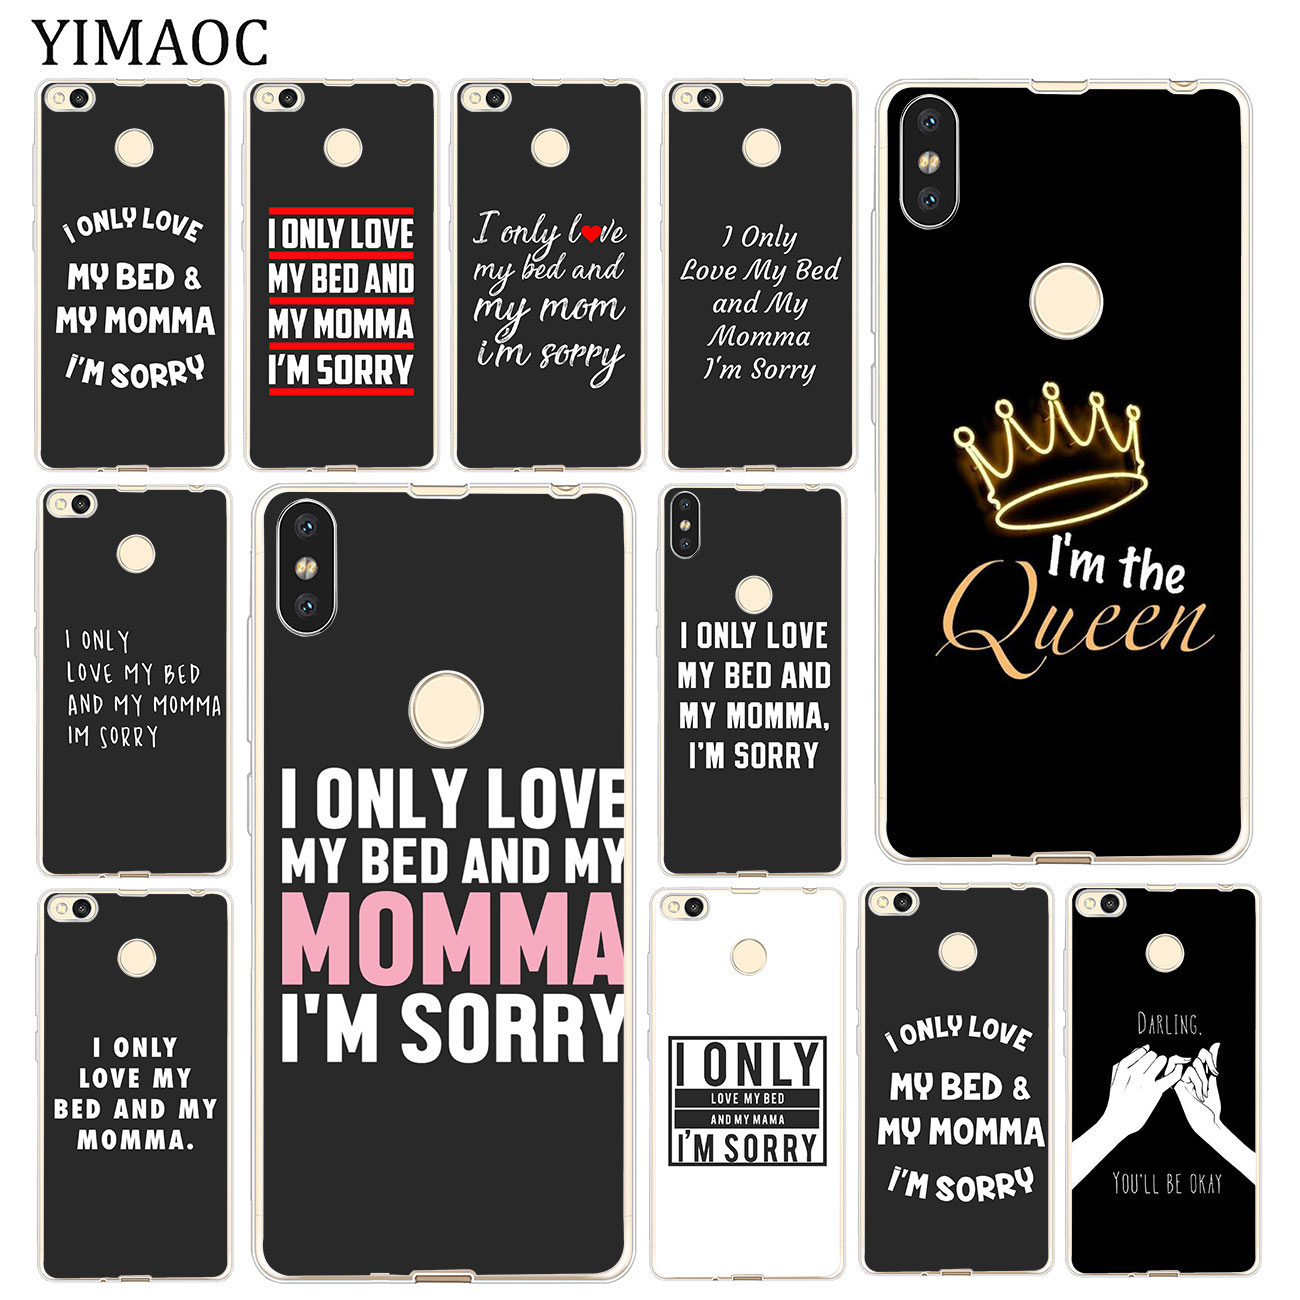 295299cf6 Detail Feedback Questions about I Only Love My Bed And My Mama I'm Sorry  Case for Xiaomi Mi 8 SE A2 Lite A1 MiX 2S Redmi 6A S2 4A Note 4 4X ...